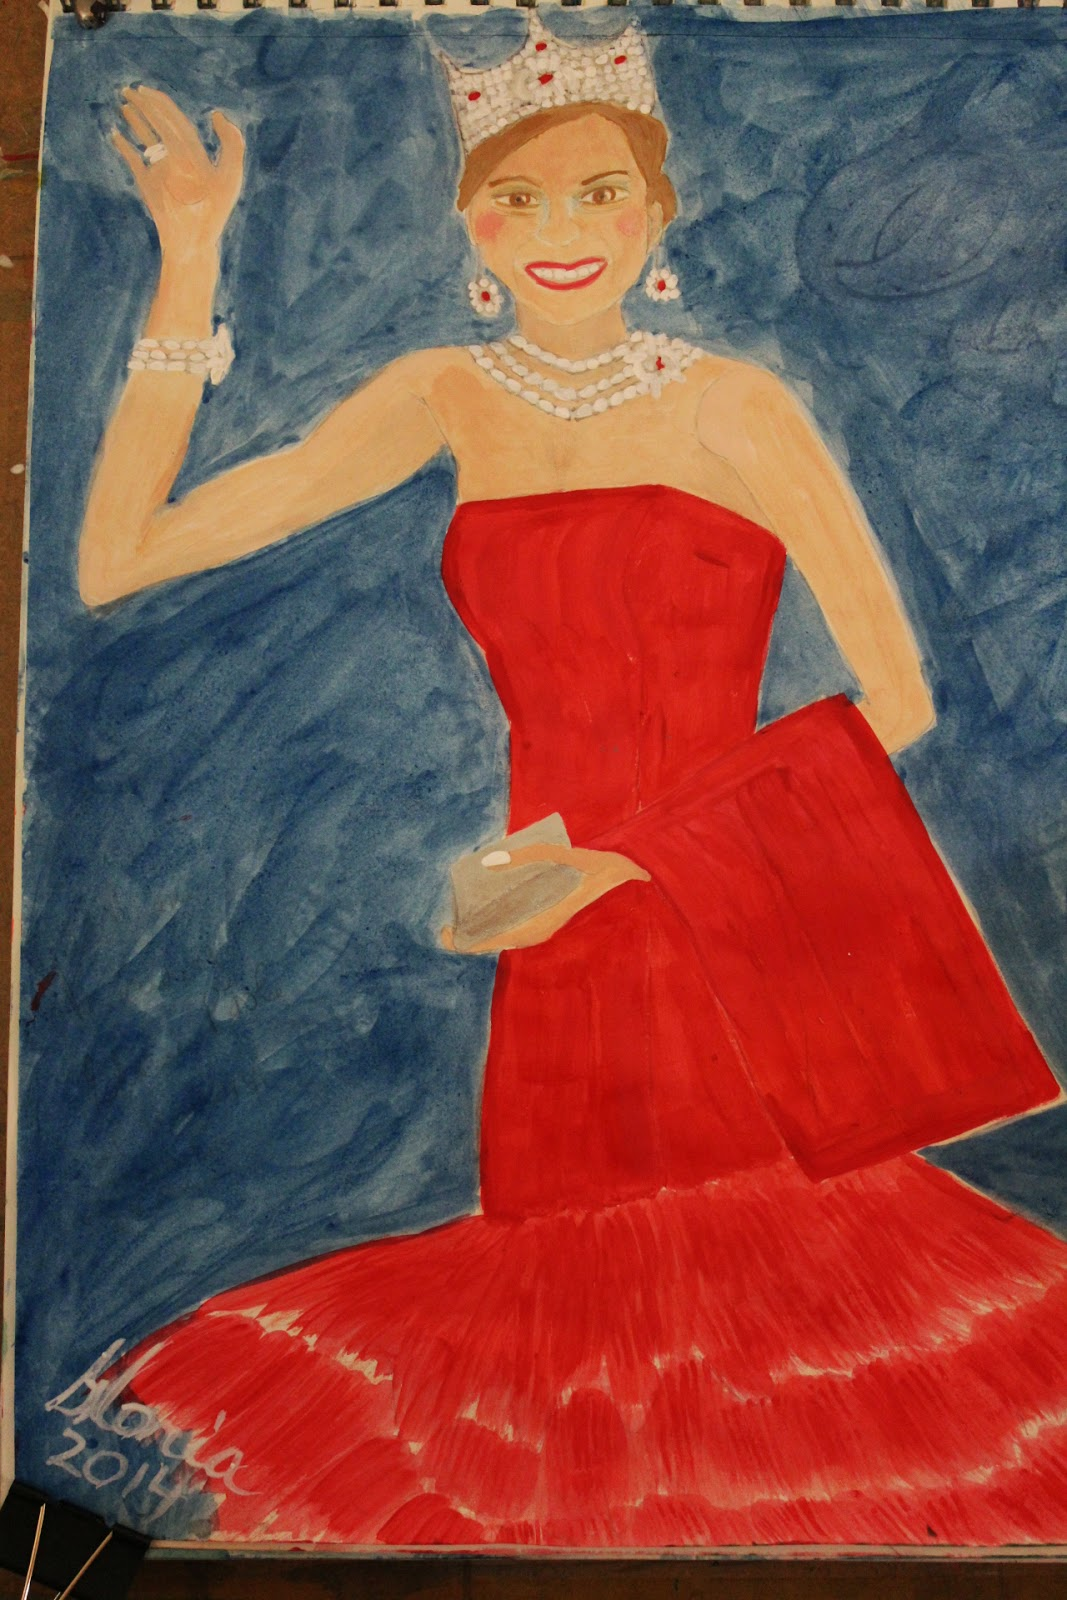 Queen-Maxima- sketch-repainted-by-gloriapoole-of-Missouri-25-May-2014